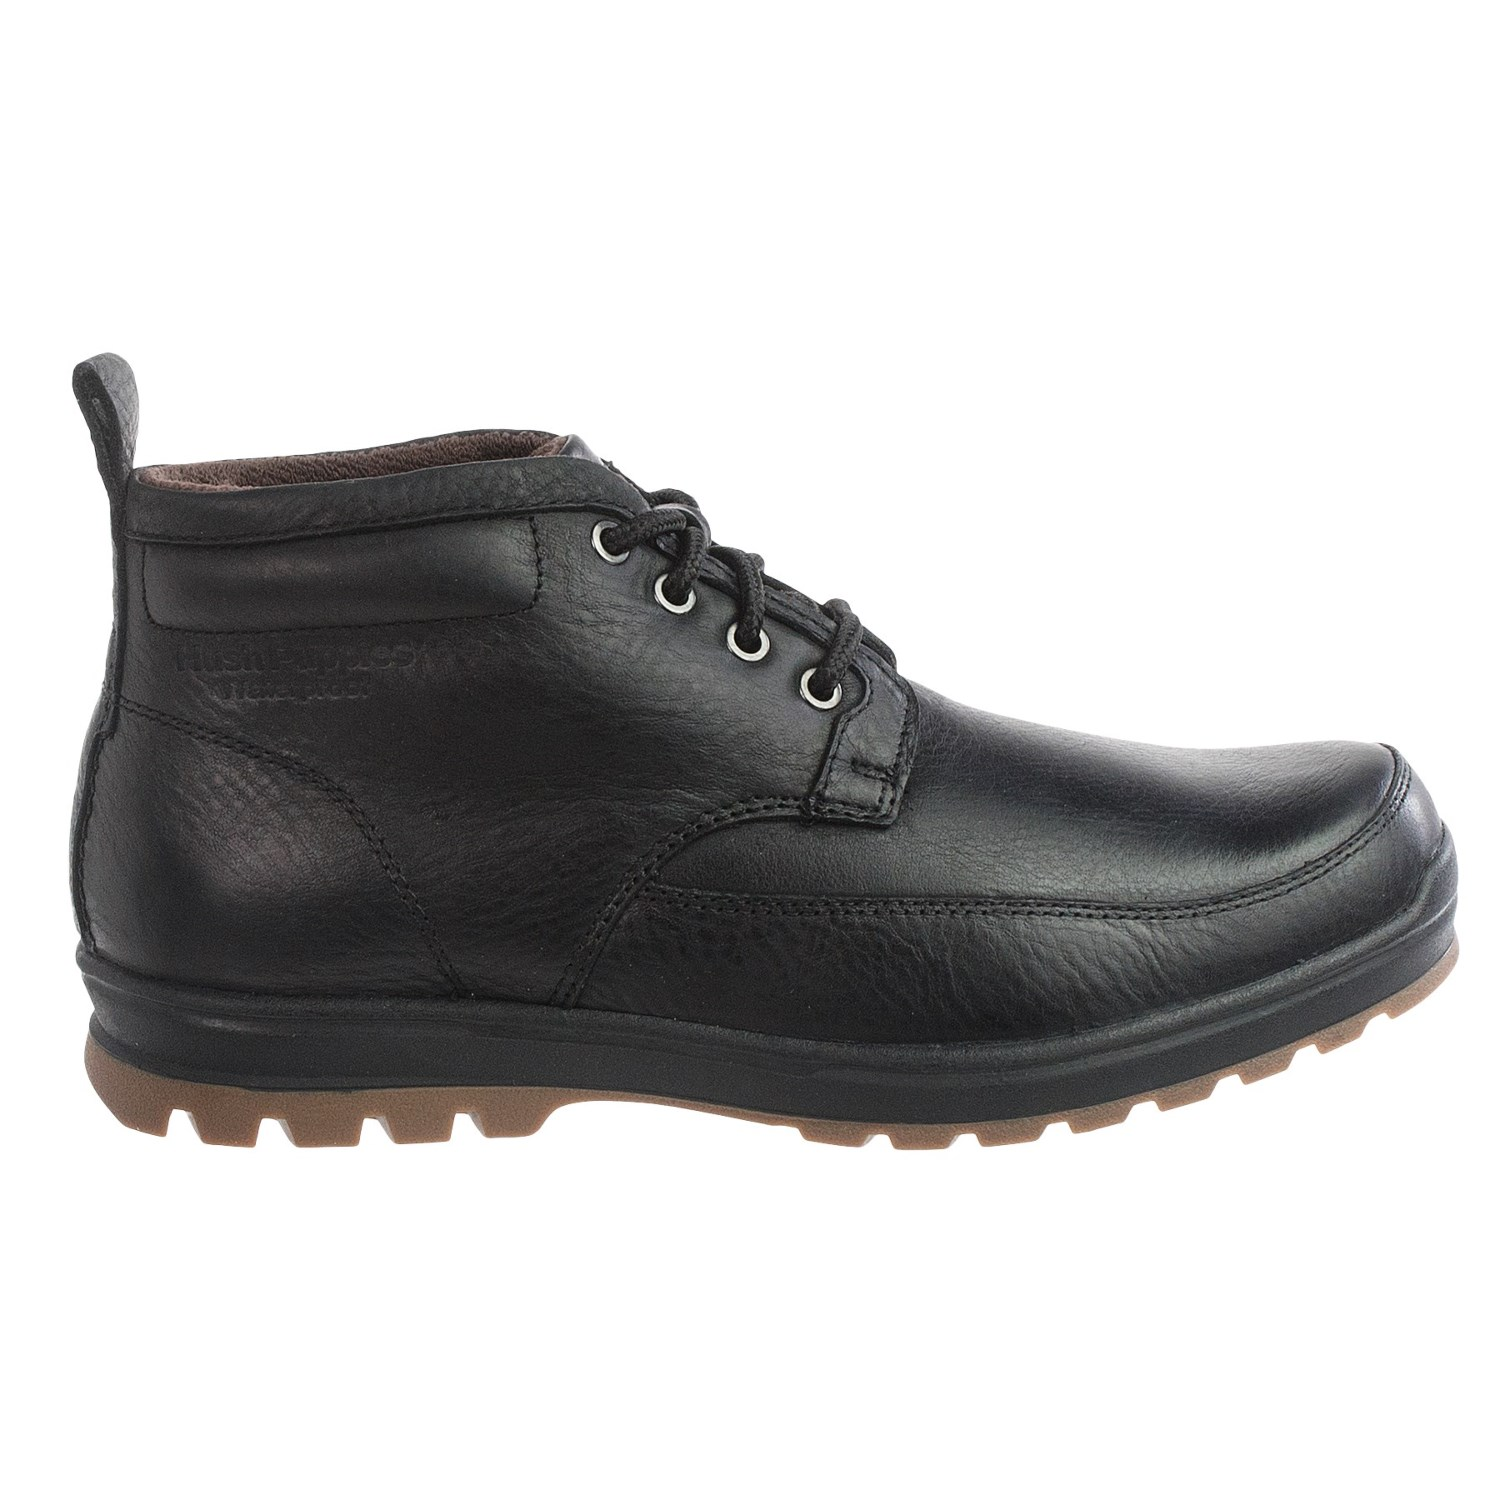 Leather Insulated Shoes